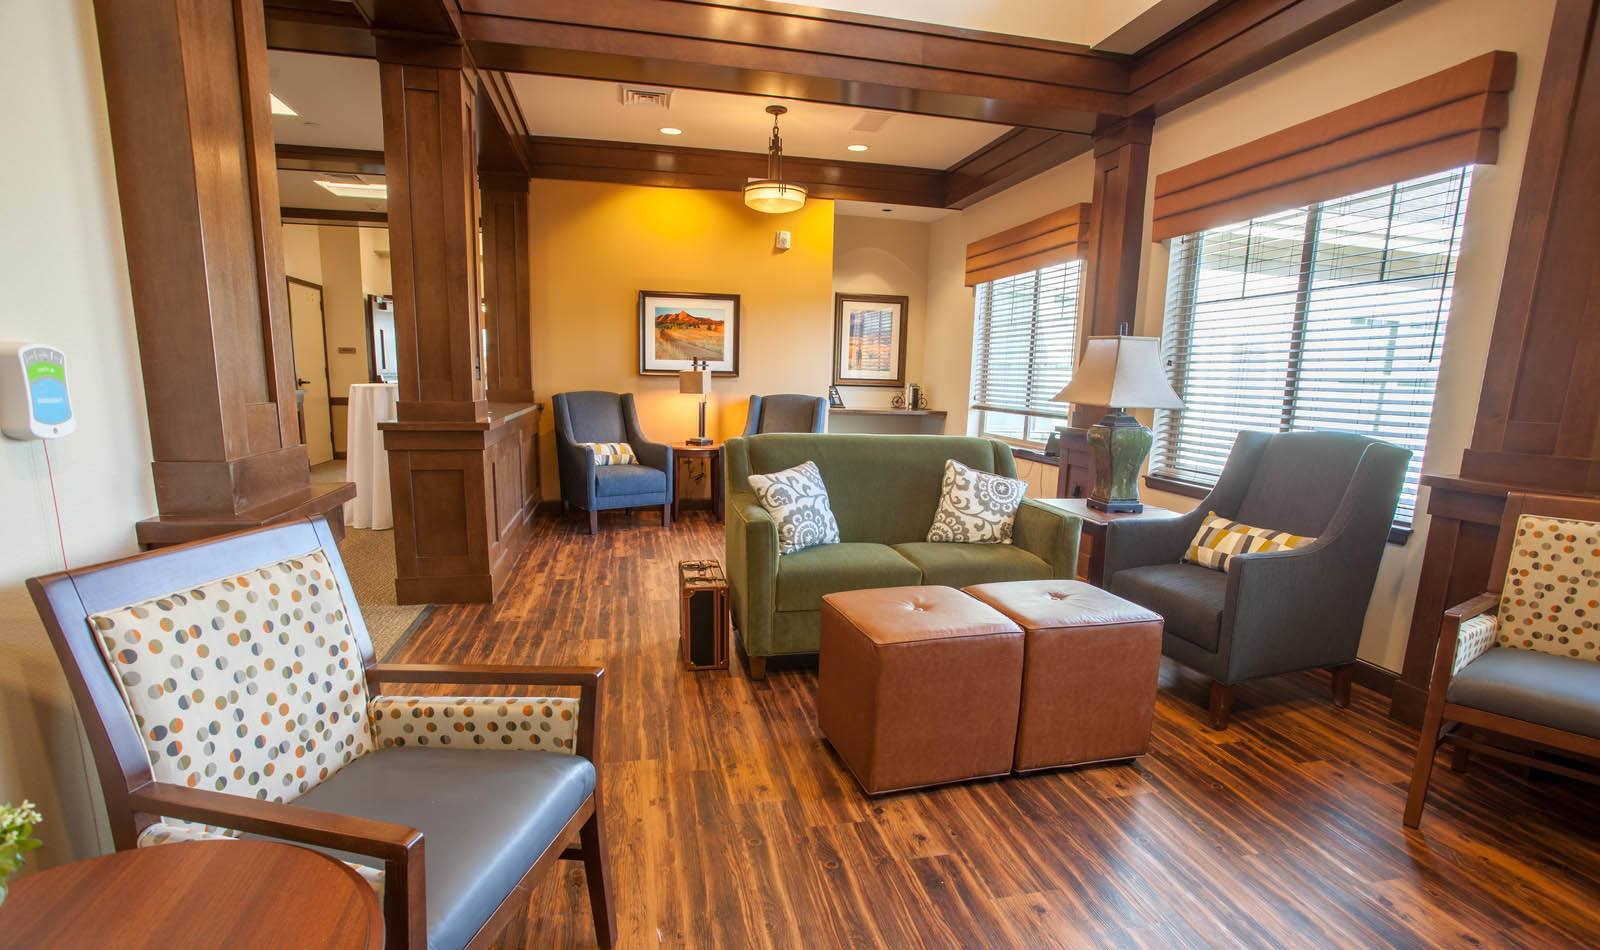 Cozy community area at Lakewood Memory Care in Lakewood